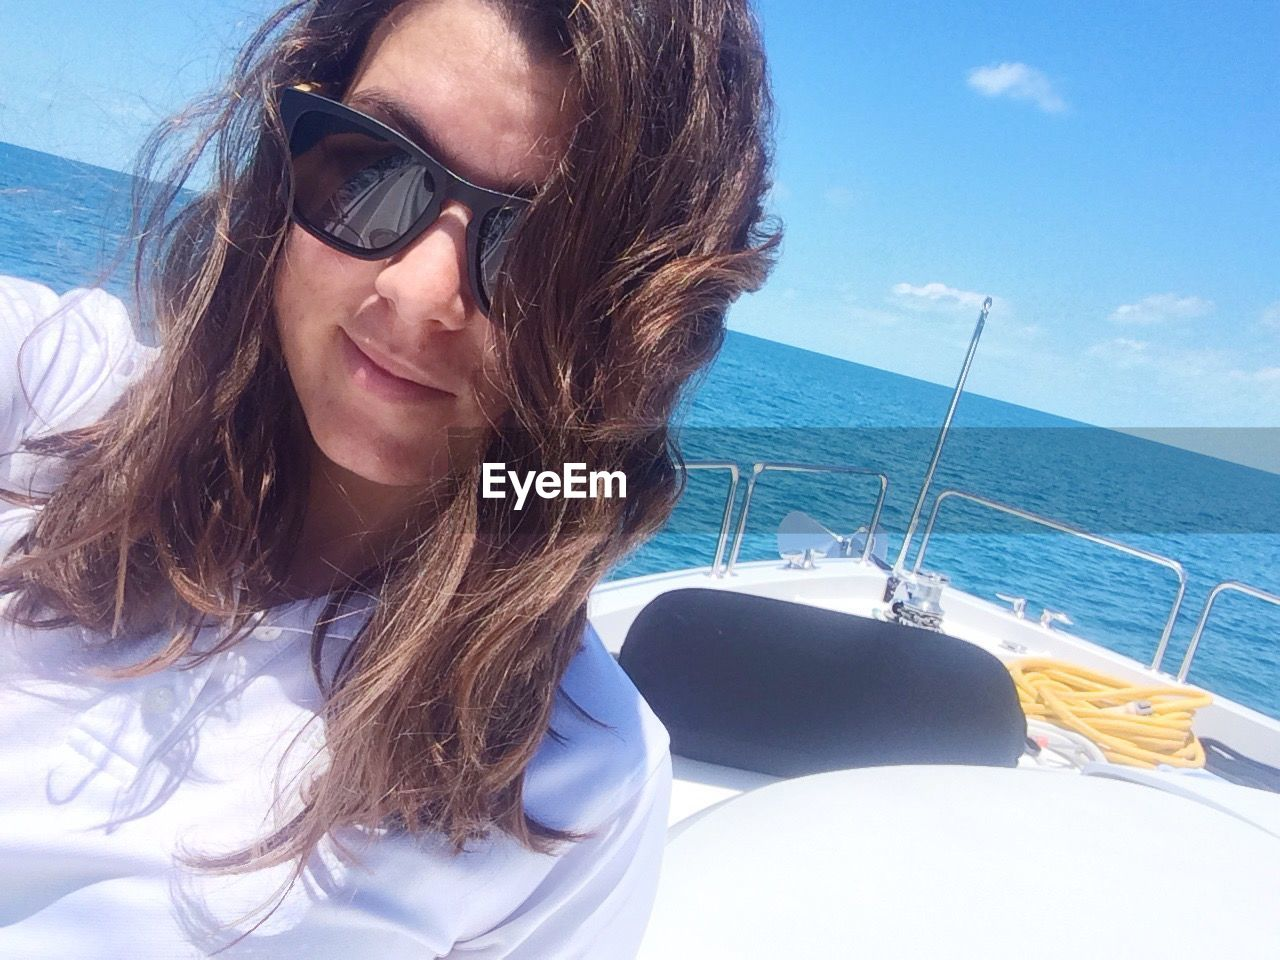 Portrait Of Young Woman On Boat At Sea Against Blue Sky